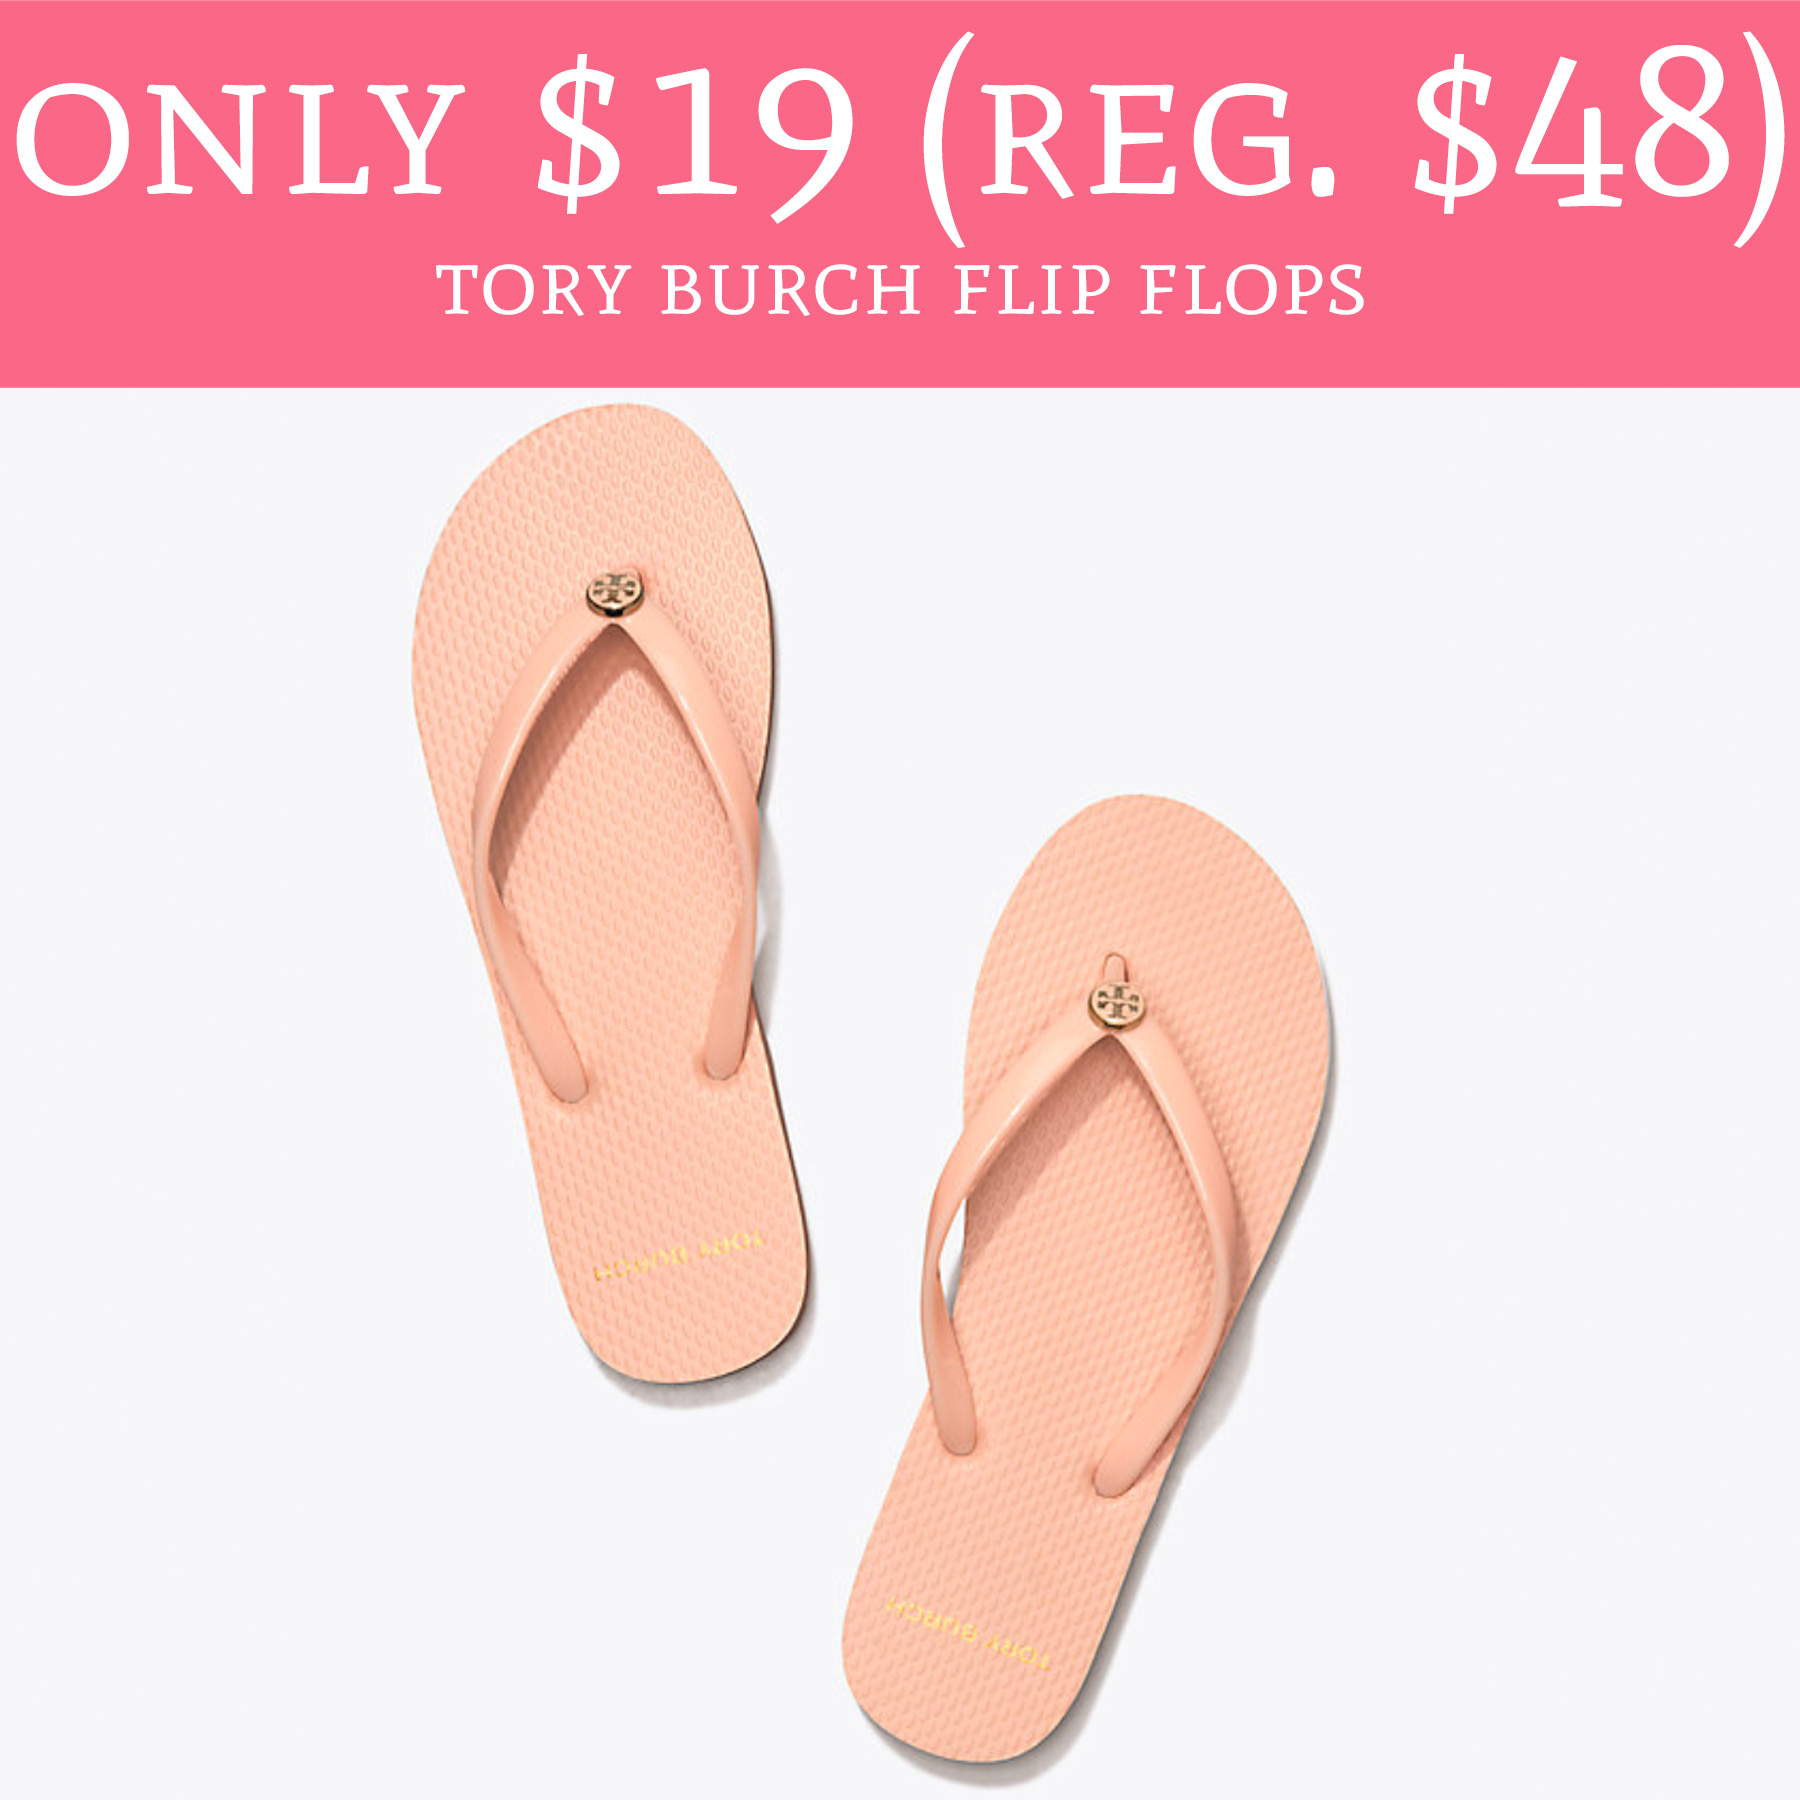 Only 19 Regular 48 Tory Burch Flip Flops In Perfect Blush - Deal Hunting Babe-8811